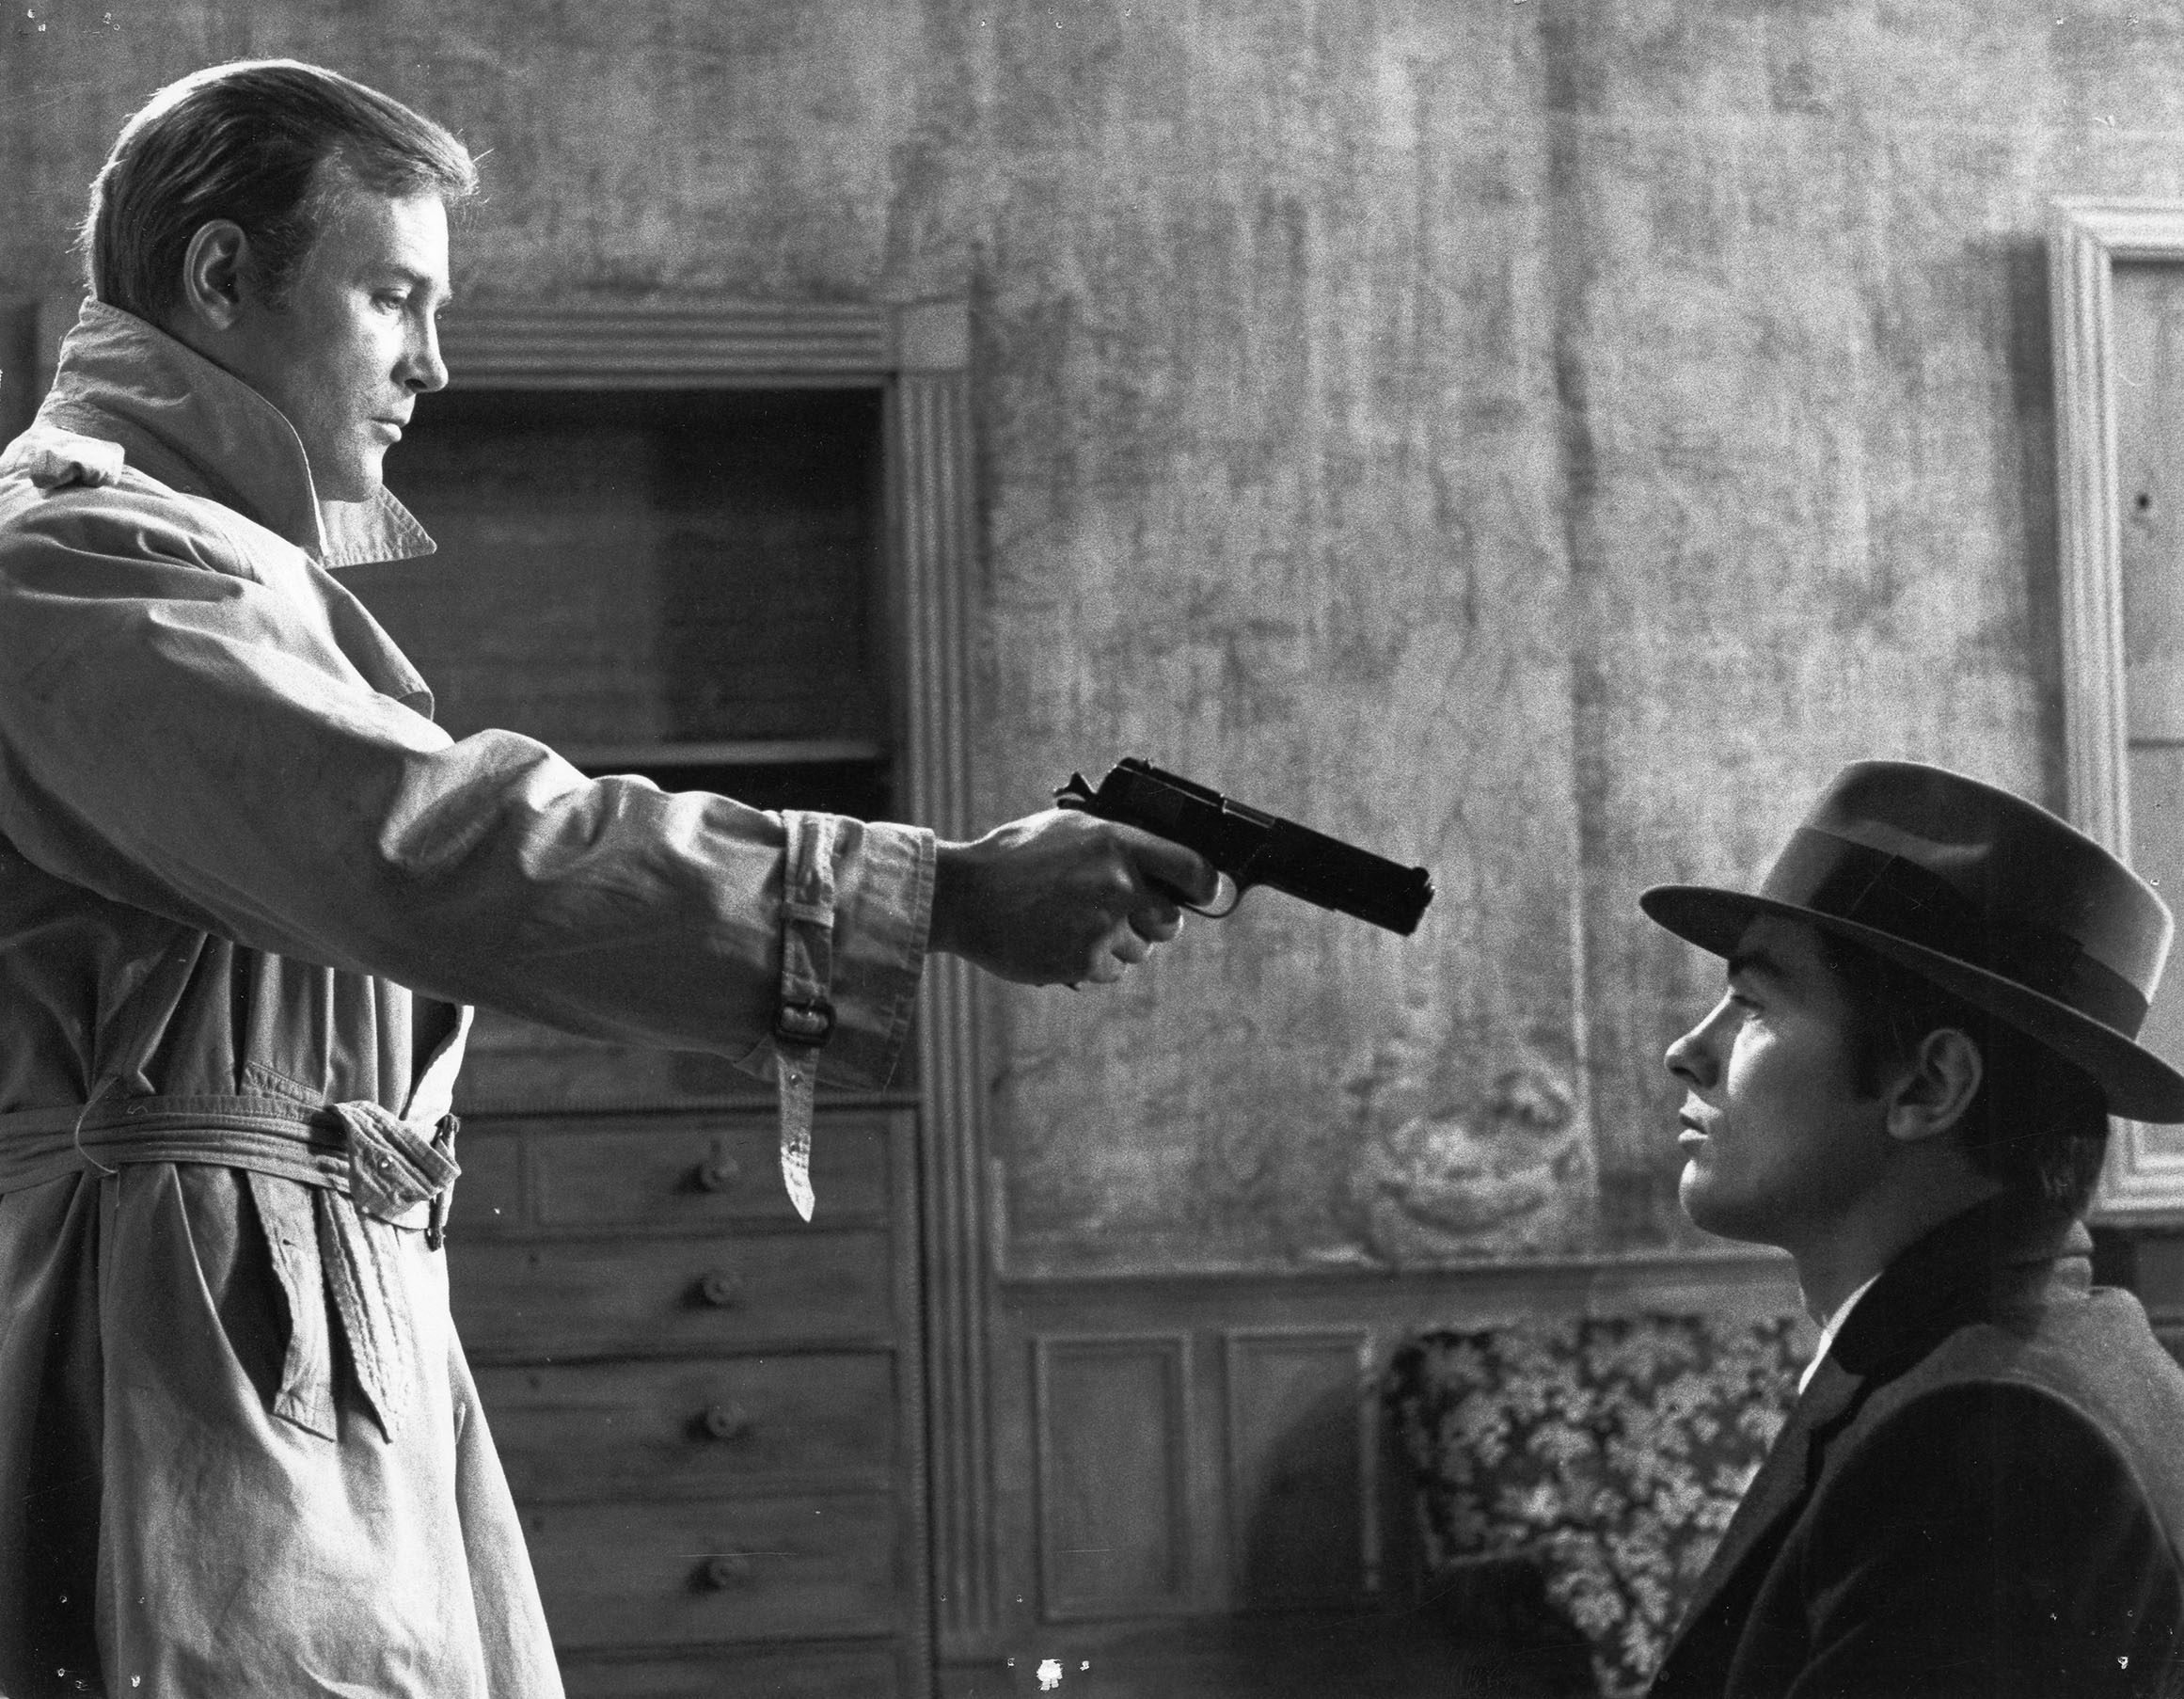 italian noir detective fiction List of the latest detective movies in 2018 and the best detective movies of 2017 top detective movies to watch on netflix, dvd or in cinema's now.